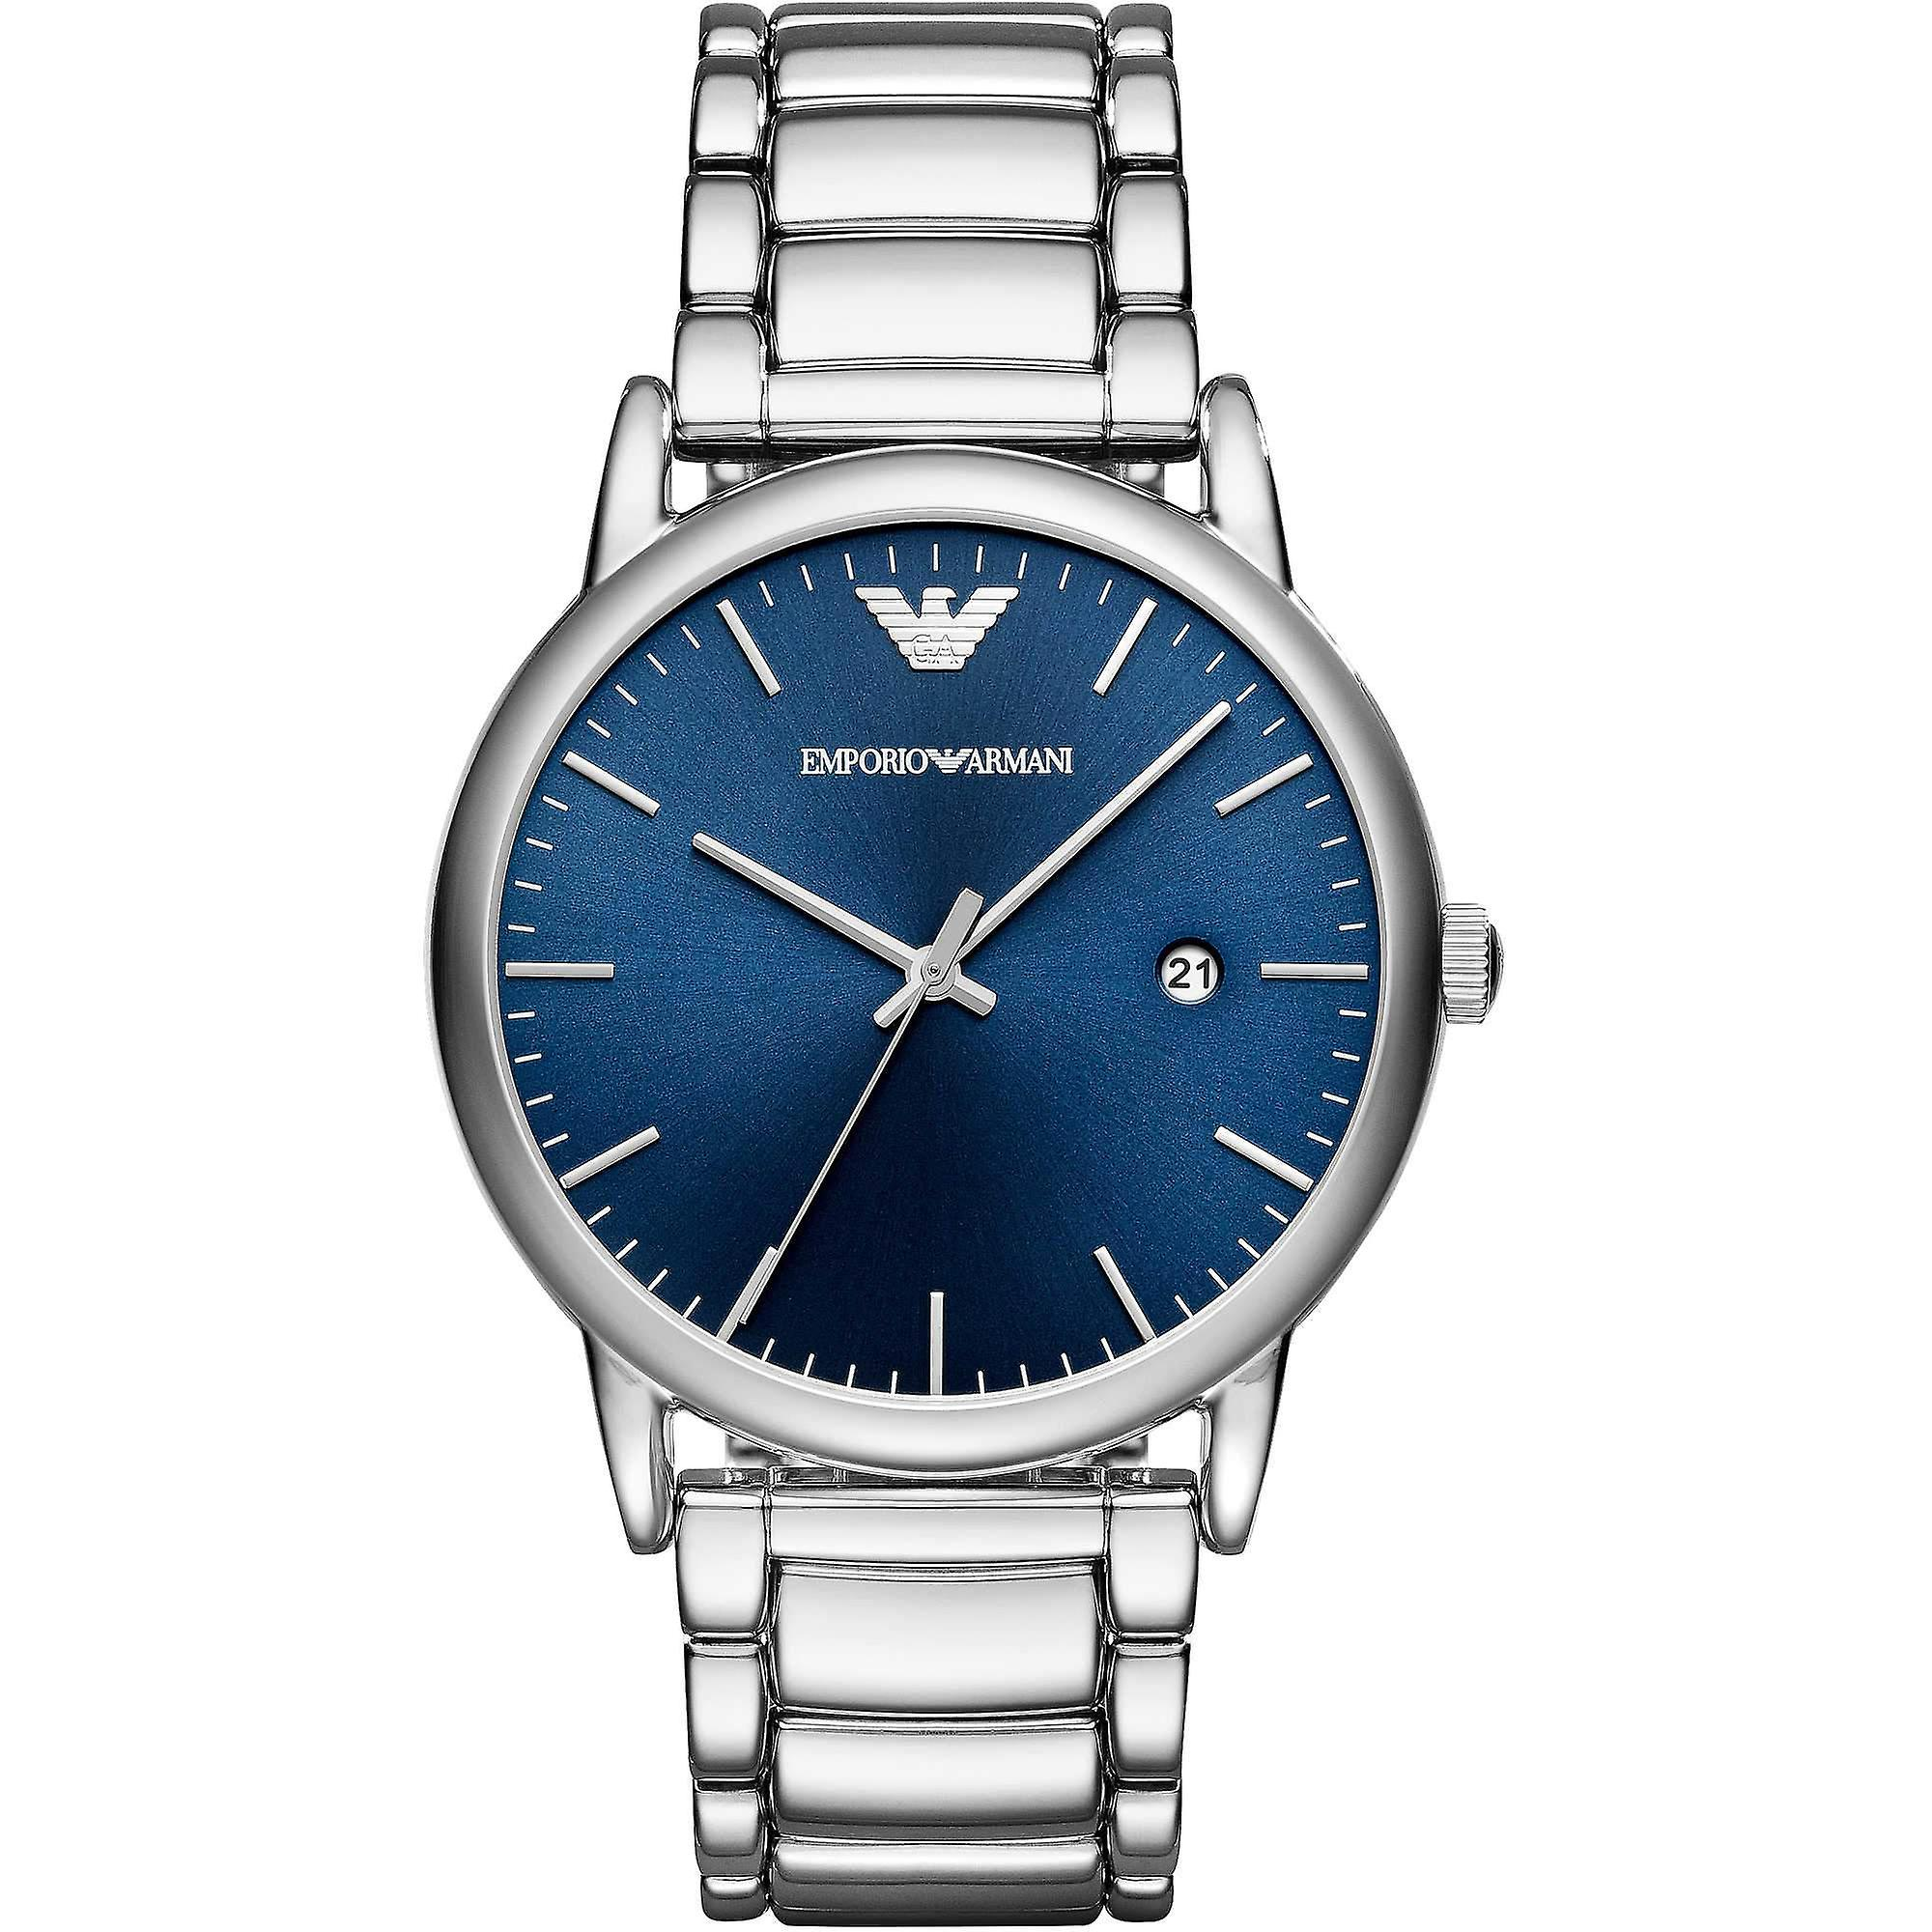 Emporio Armani Ar11089 Men's Silver 43mm Stainless Steel Watch